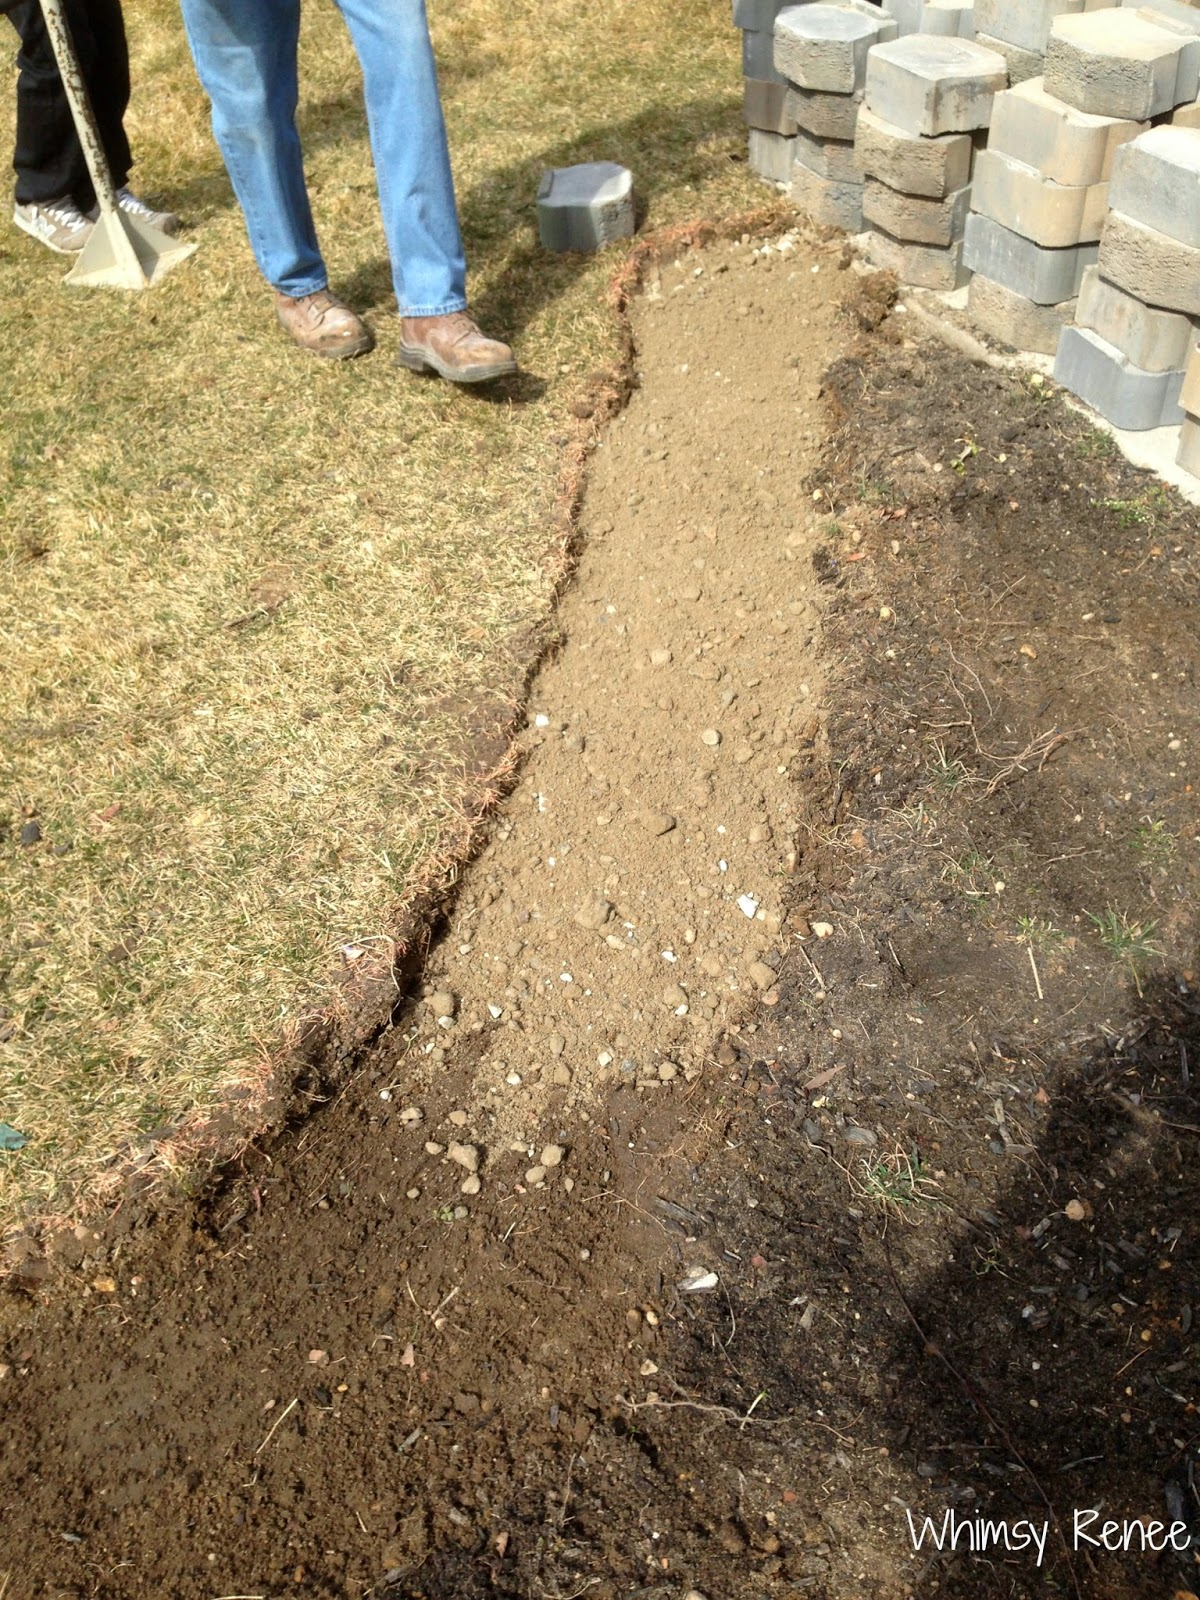 Whimsy Renee: Building a Garden Wall - The Beginning